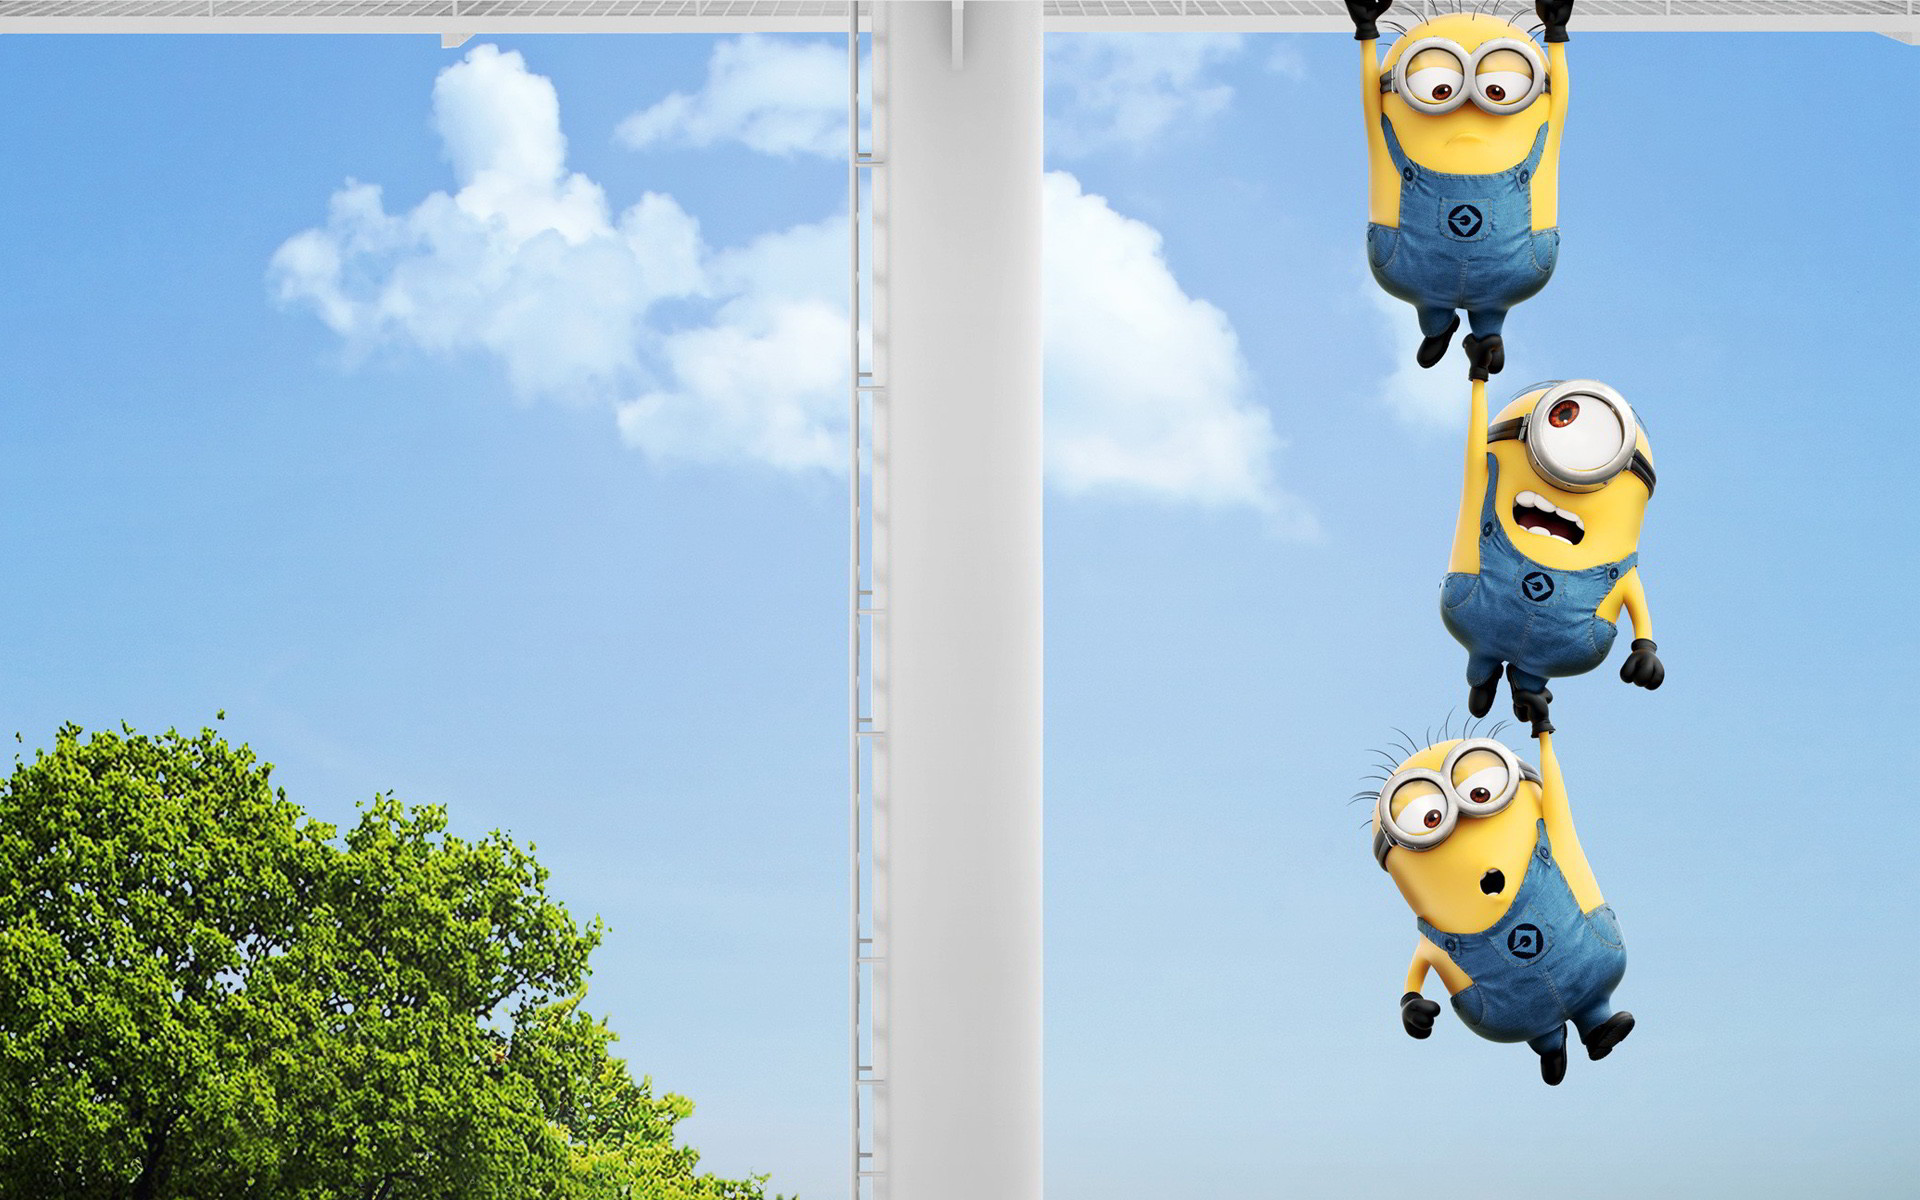 1920x1200 ... funny cute minions hd wallpapers hd wallpapers gifs; desktop wallpapers  for me wallpapersafari ...